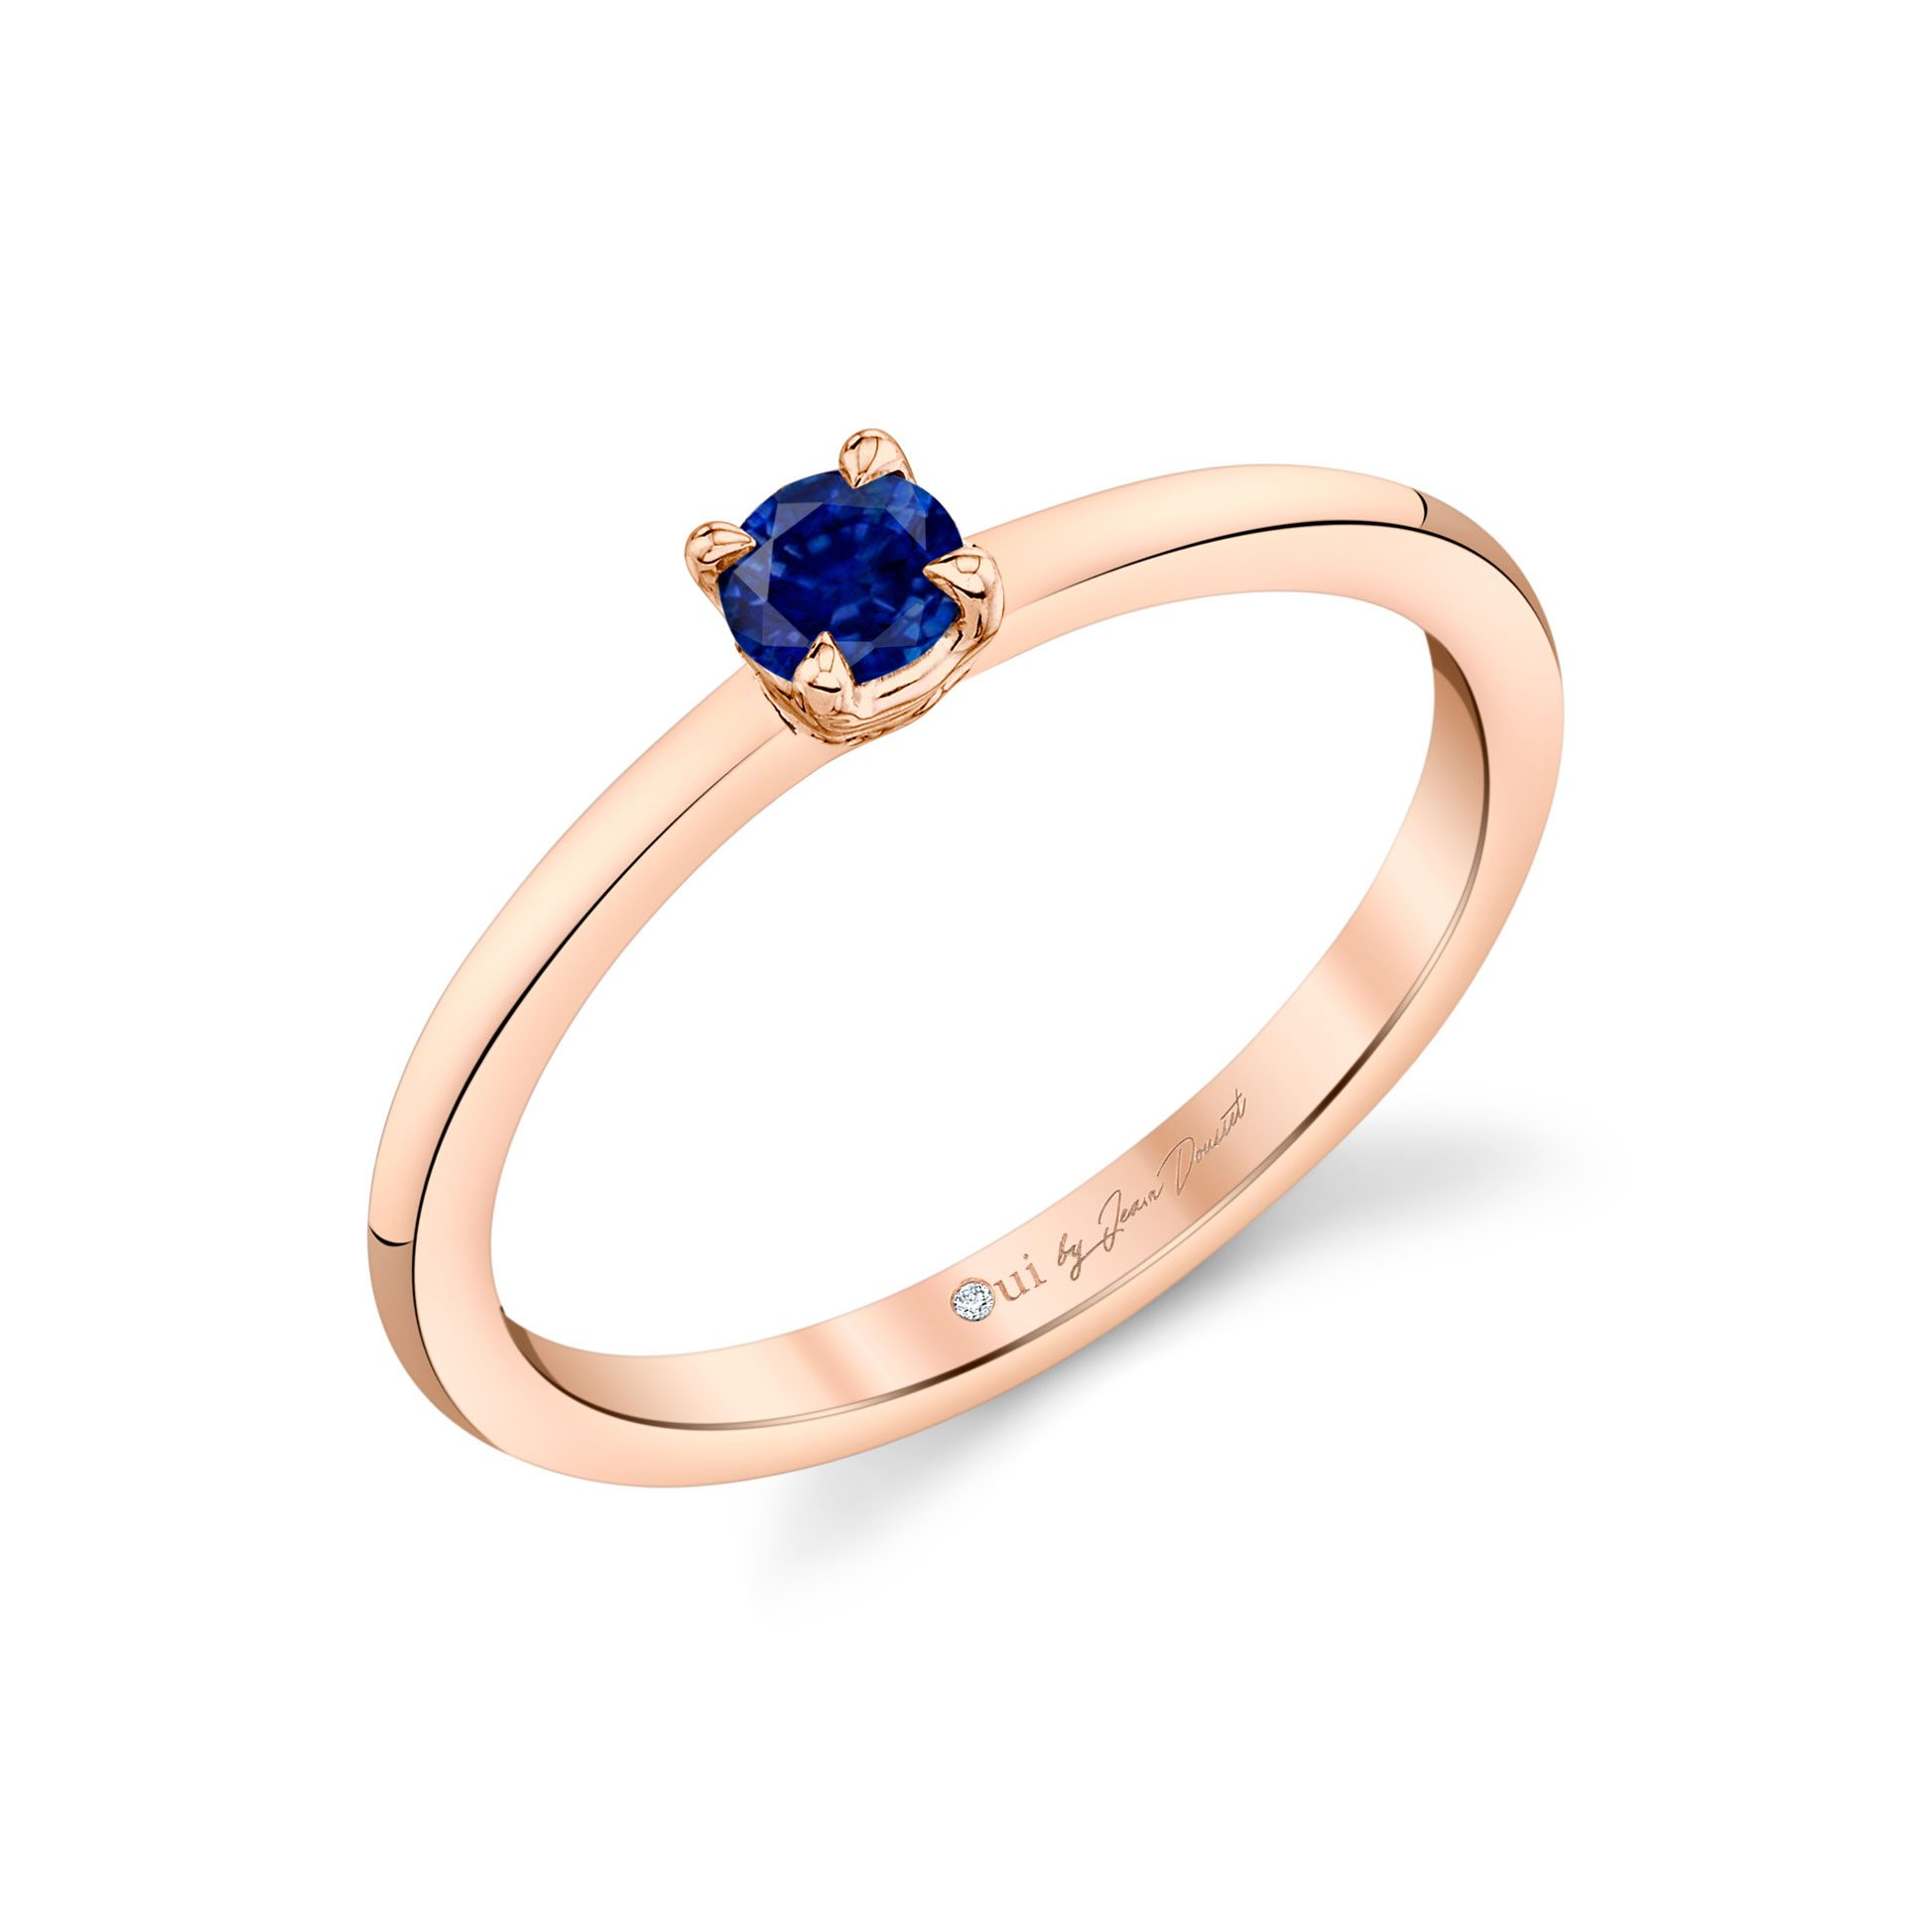 La Petite Round Brilliant Blue Sapphire Ring in 18k Rose Gold Profile View by Oui by Jean Dousset